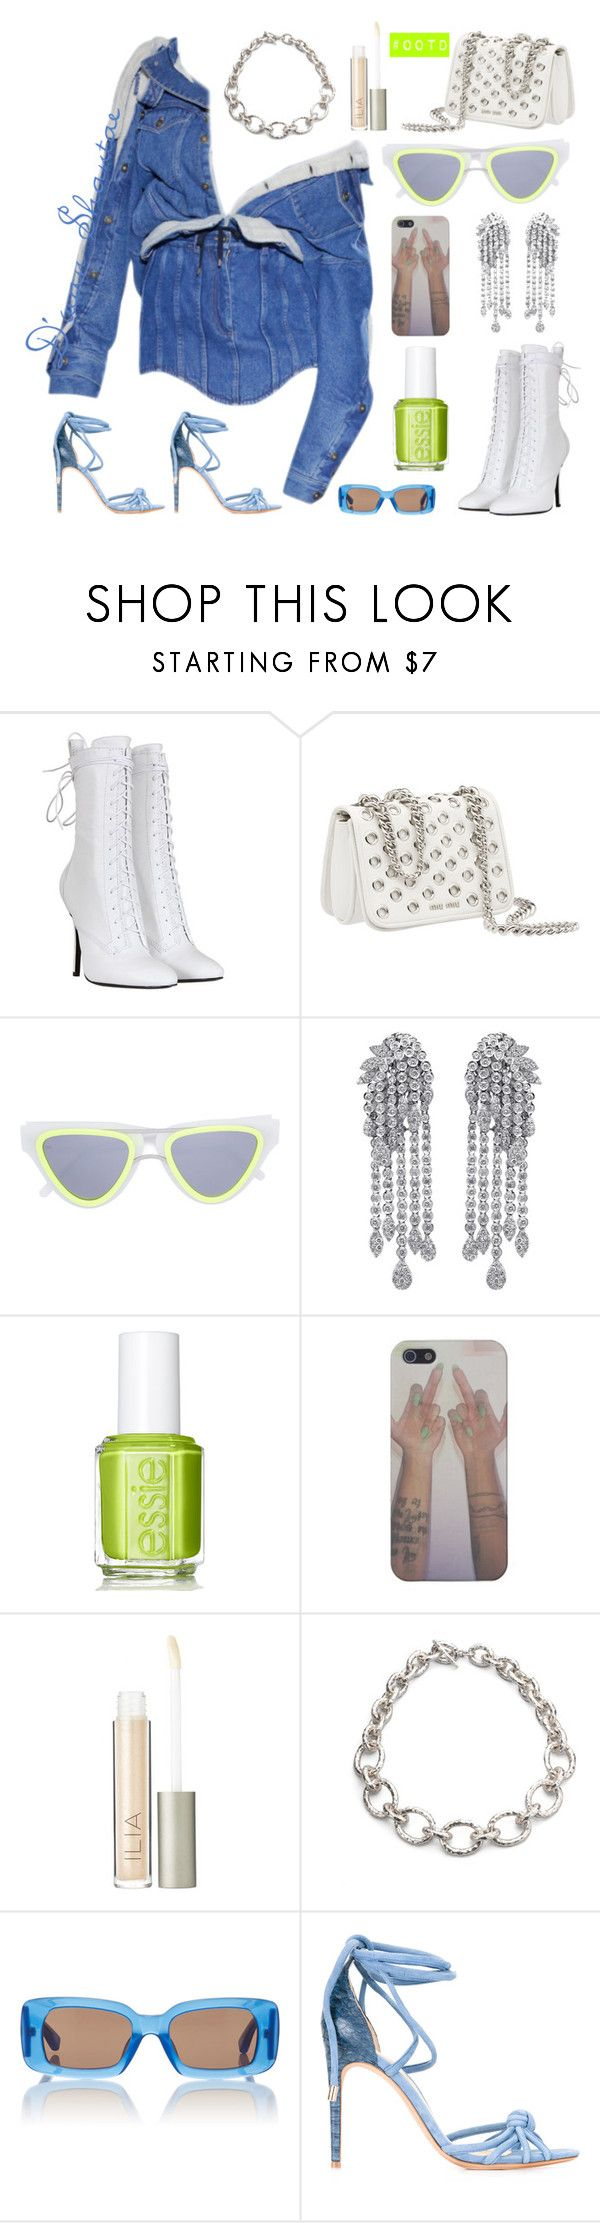 """#OOTD- Y Project Jacket, Balmain Boots, Miu Miu Bag"" by adswil ❤ liked on Polyvore featuring Balmain, Miu Miu, Smoke x Mirrors, Essie, Ilia, Ippolita, Dries Van Noten and Alexandre Birman"